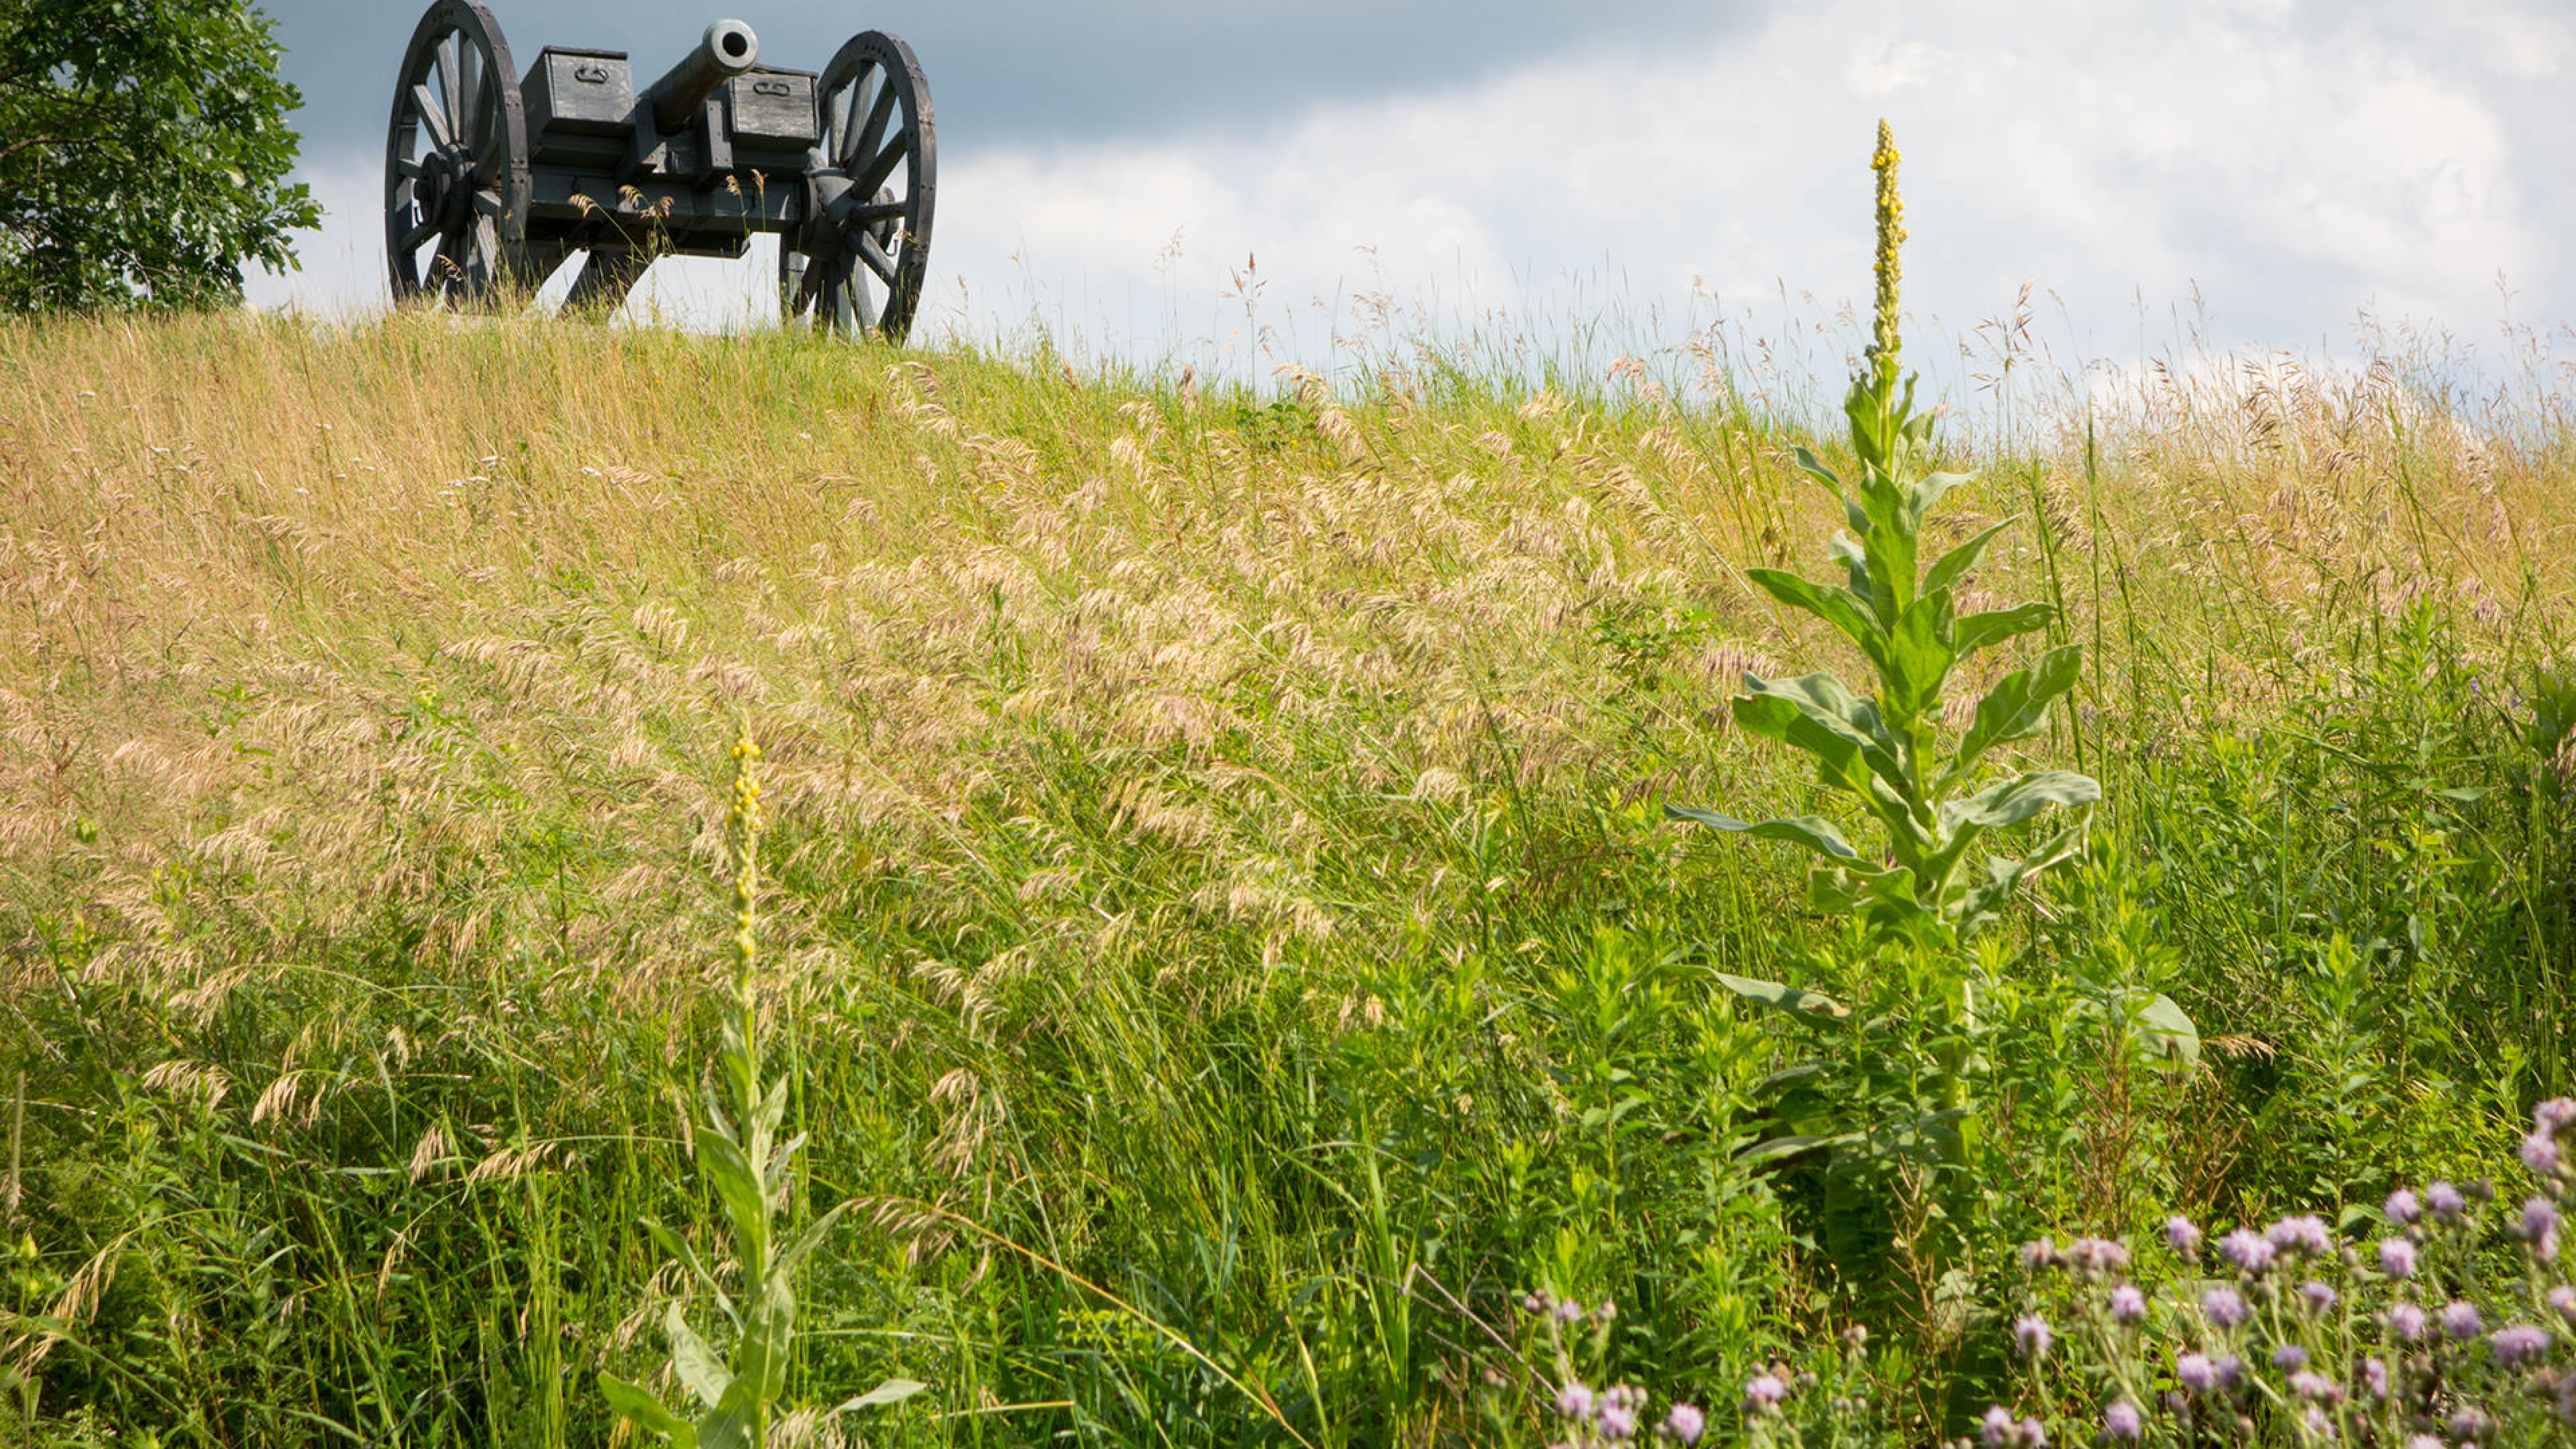 cannon overlooks hill with wildflowers